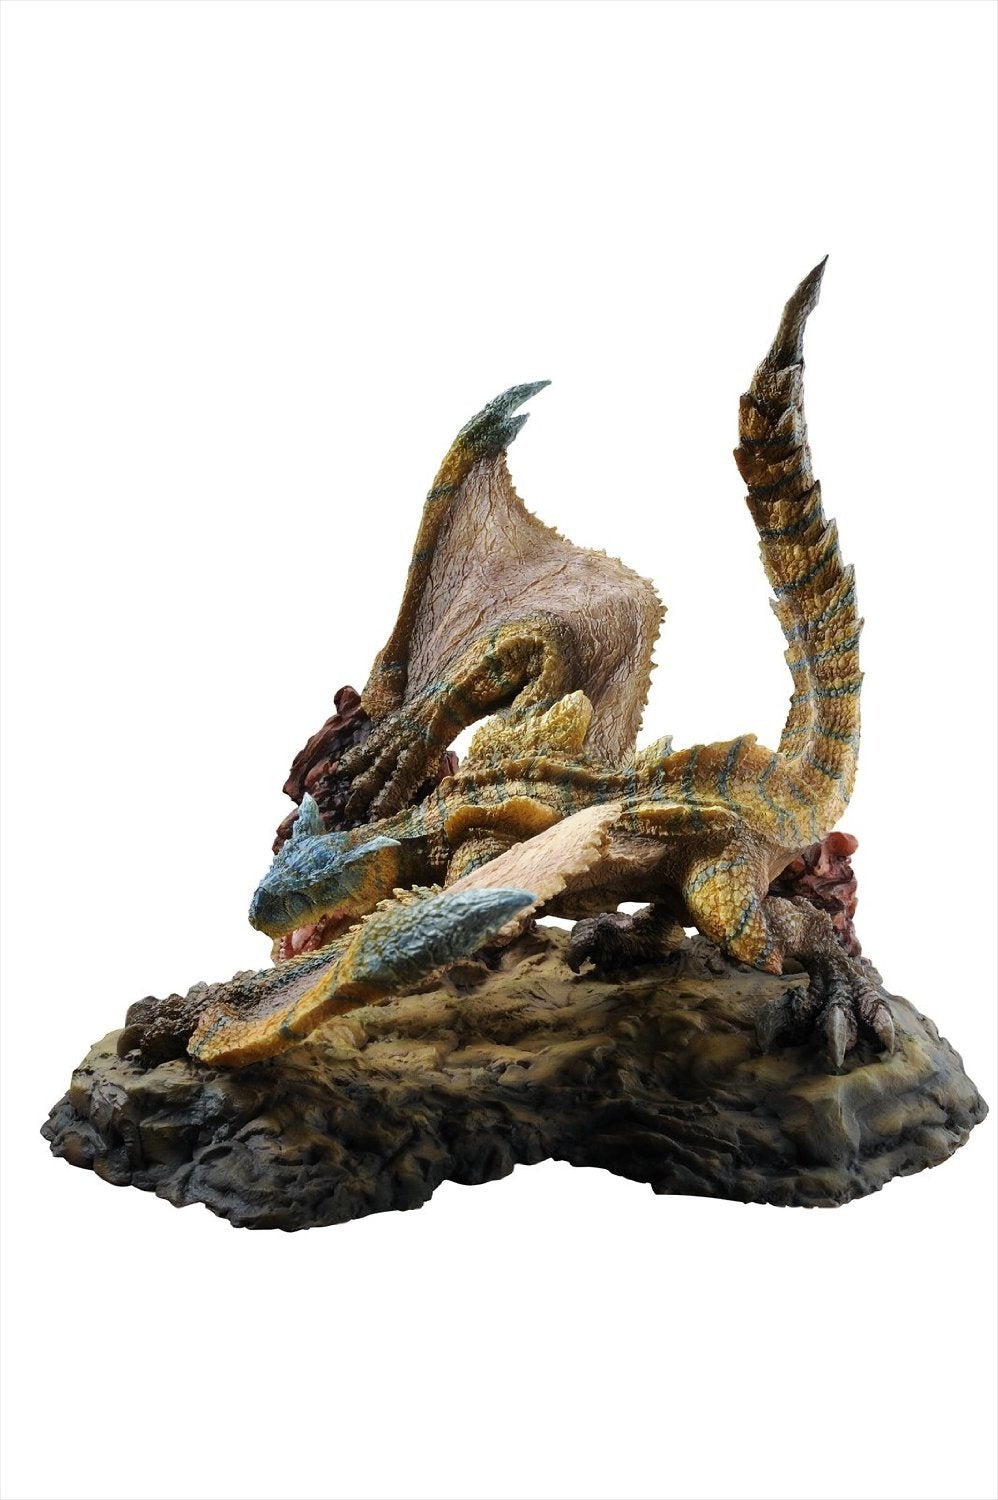 Capcom CFB Creators Model Tigrex